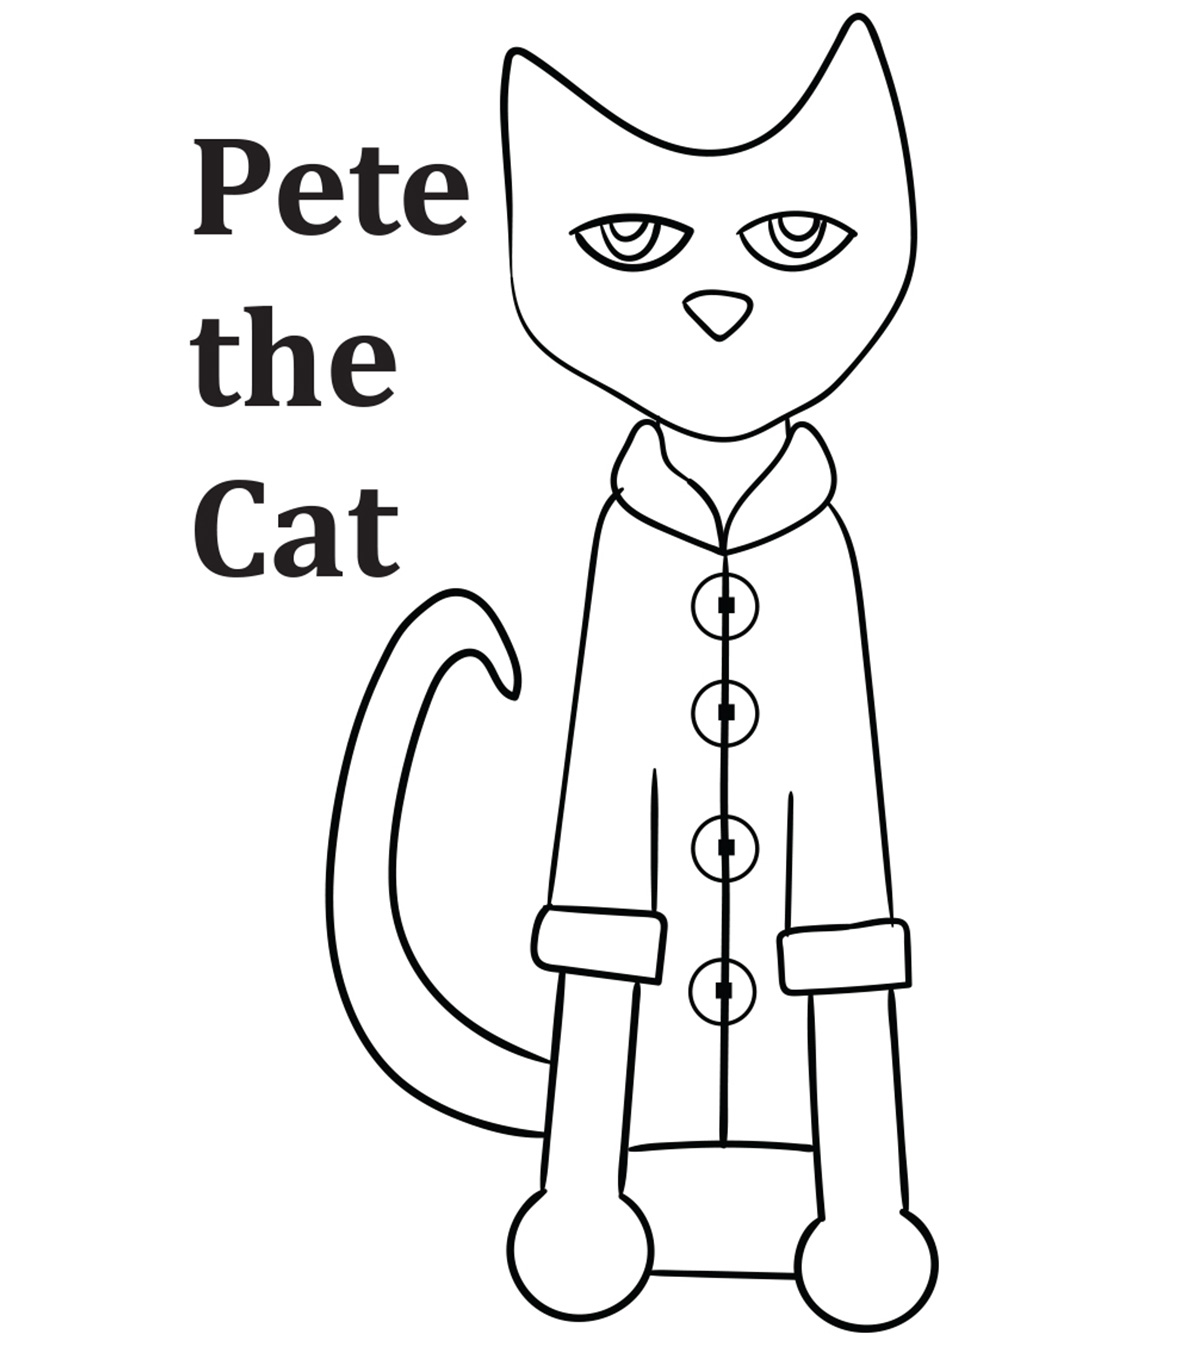 photograph about Pete the Cat Shoes Printable named Best 21 Absolutely free Printable Pete The Cat Coloring Webpages On line